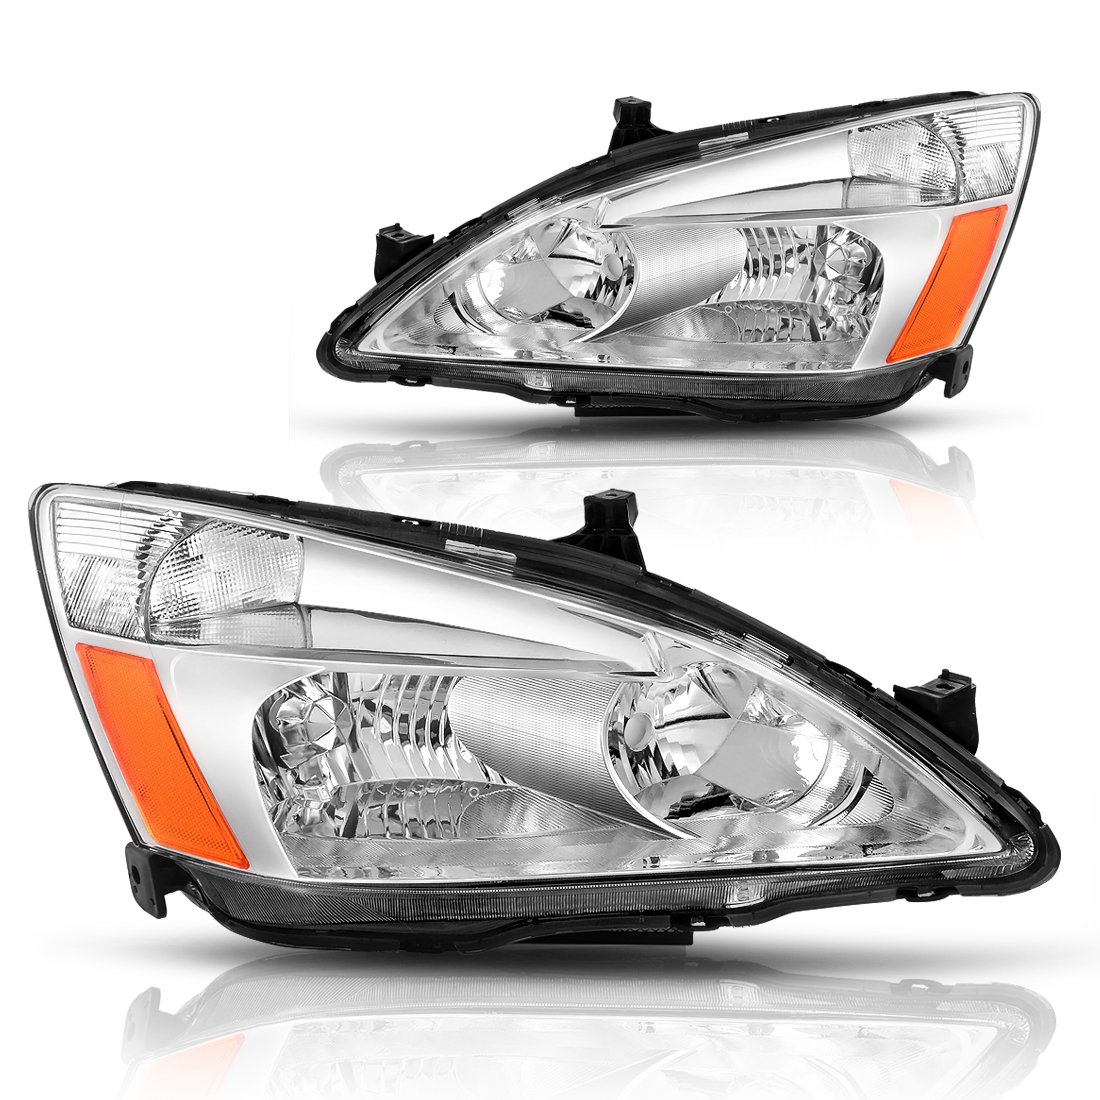 AUTOSAVER88 For 03 04 05 06 07 Honda Accord Headlight Assembly OE Headlamp Replacement, Chrome Housing Clear Lens, One-Year Limited Warranty(Pair,HO2502120&HO2503120) Honda Accord 2003-2007